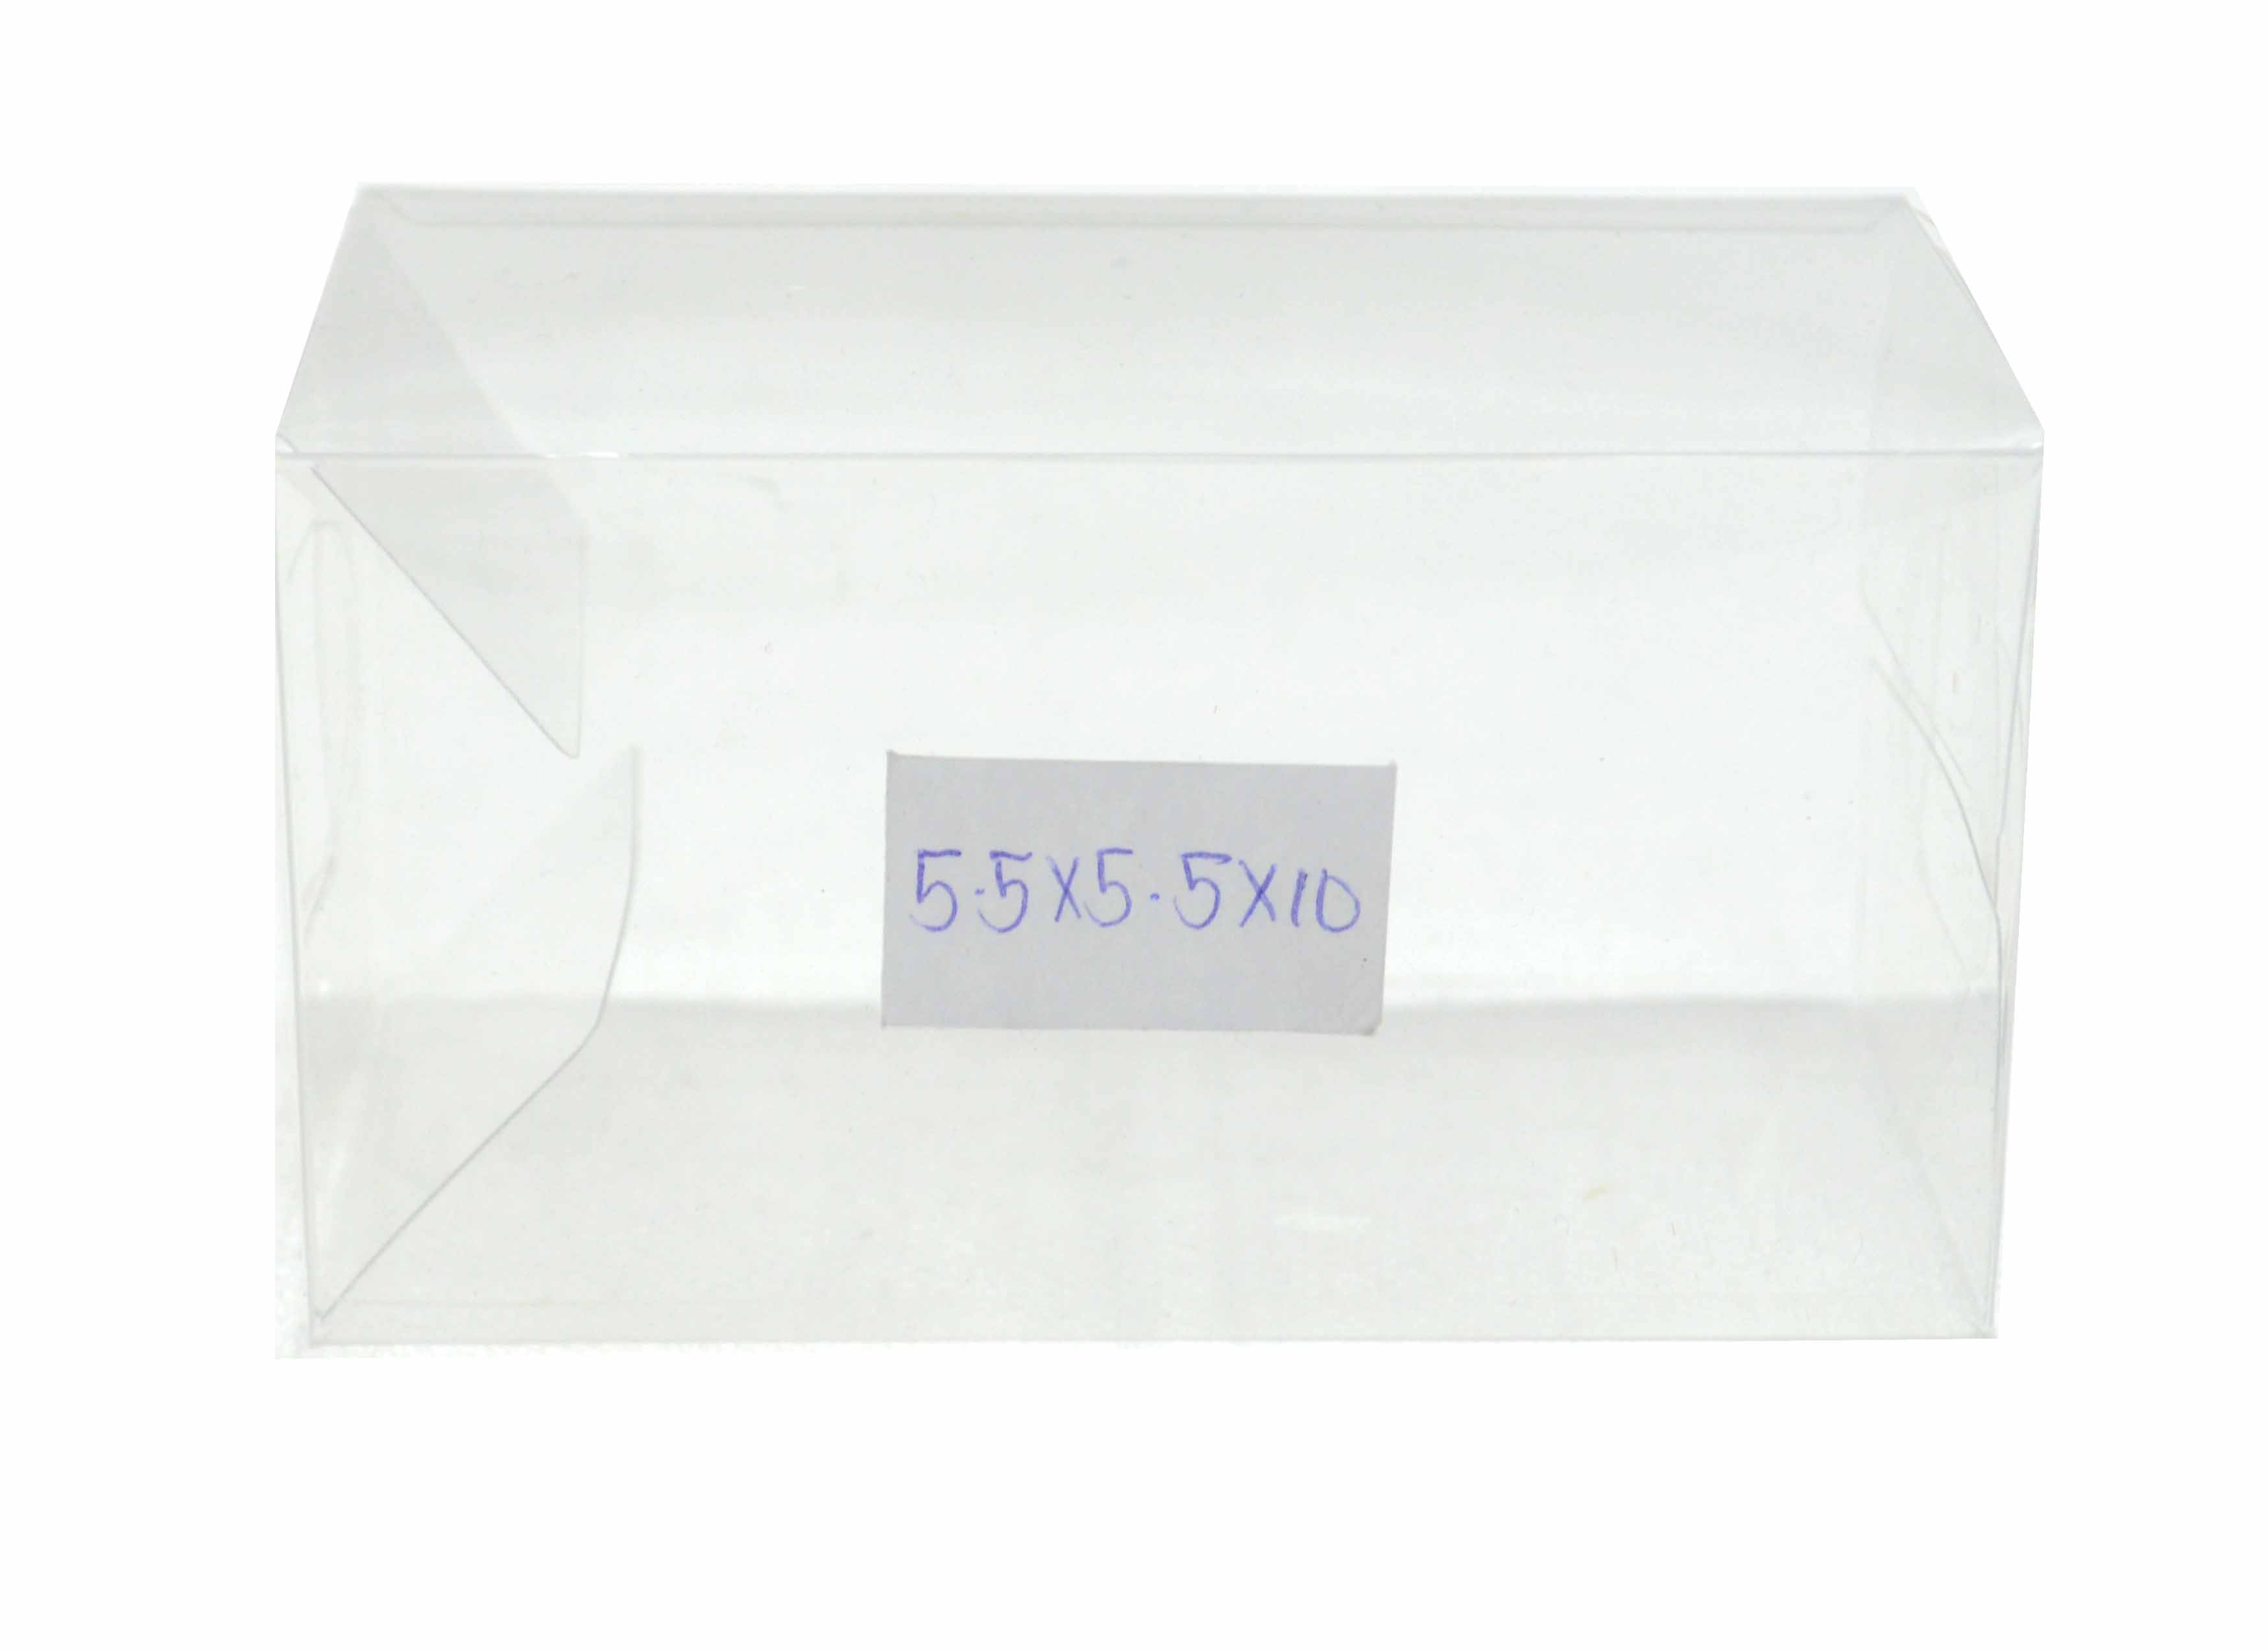 Acetate Box Size 5.5x5.5x10